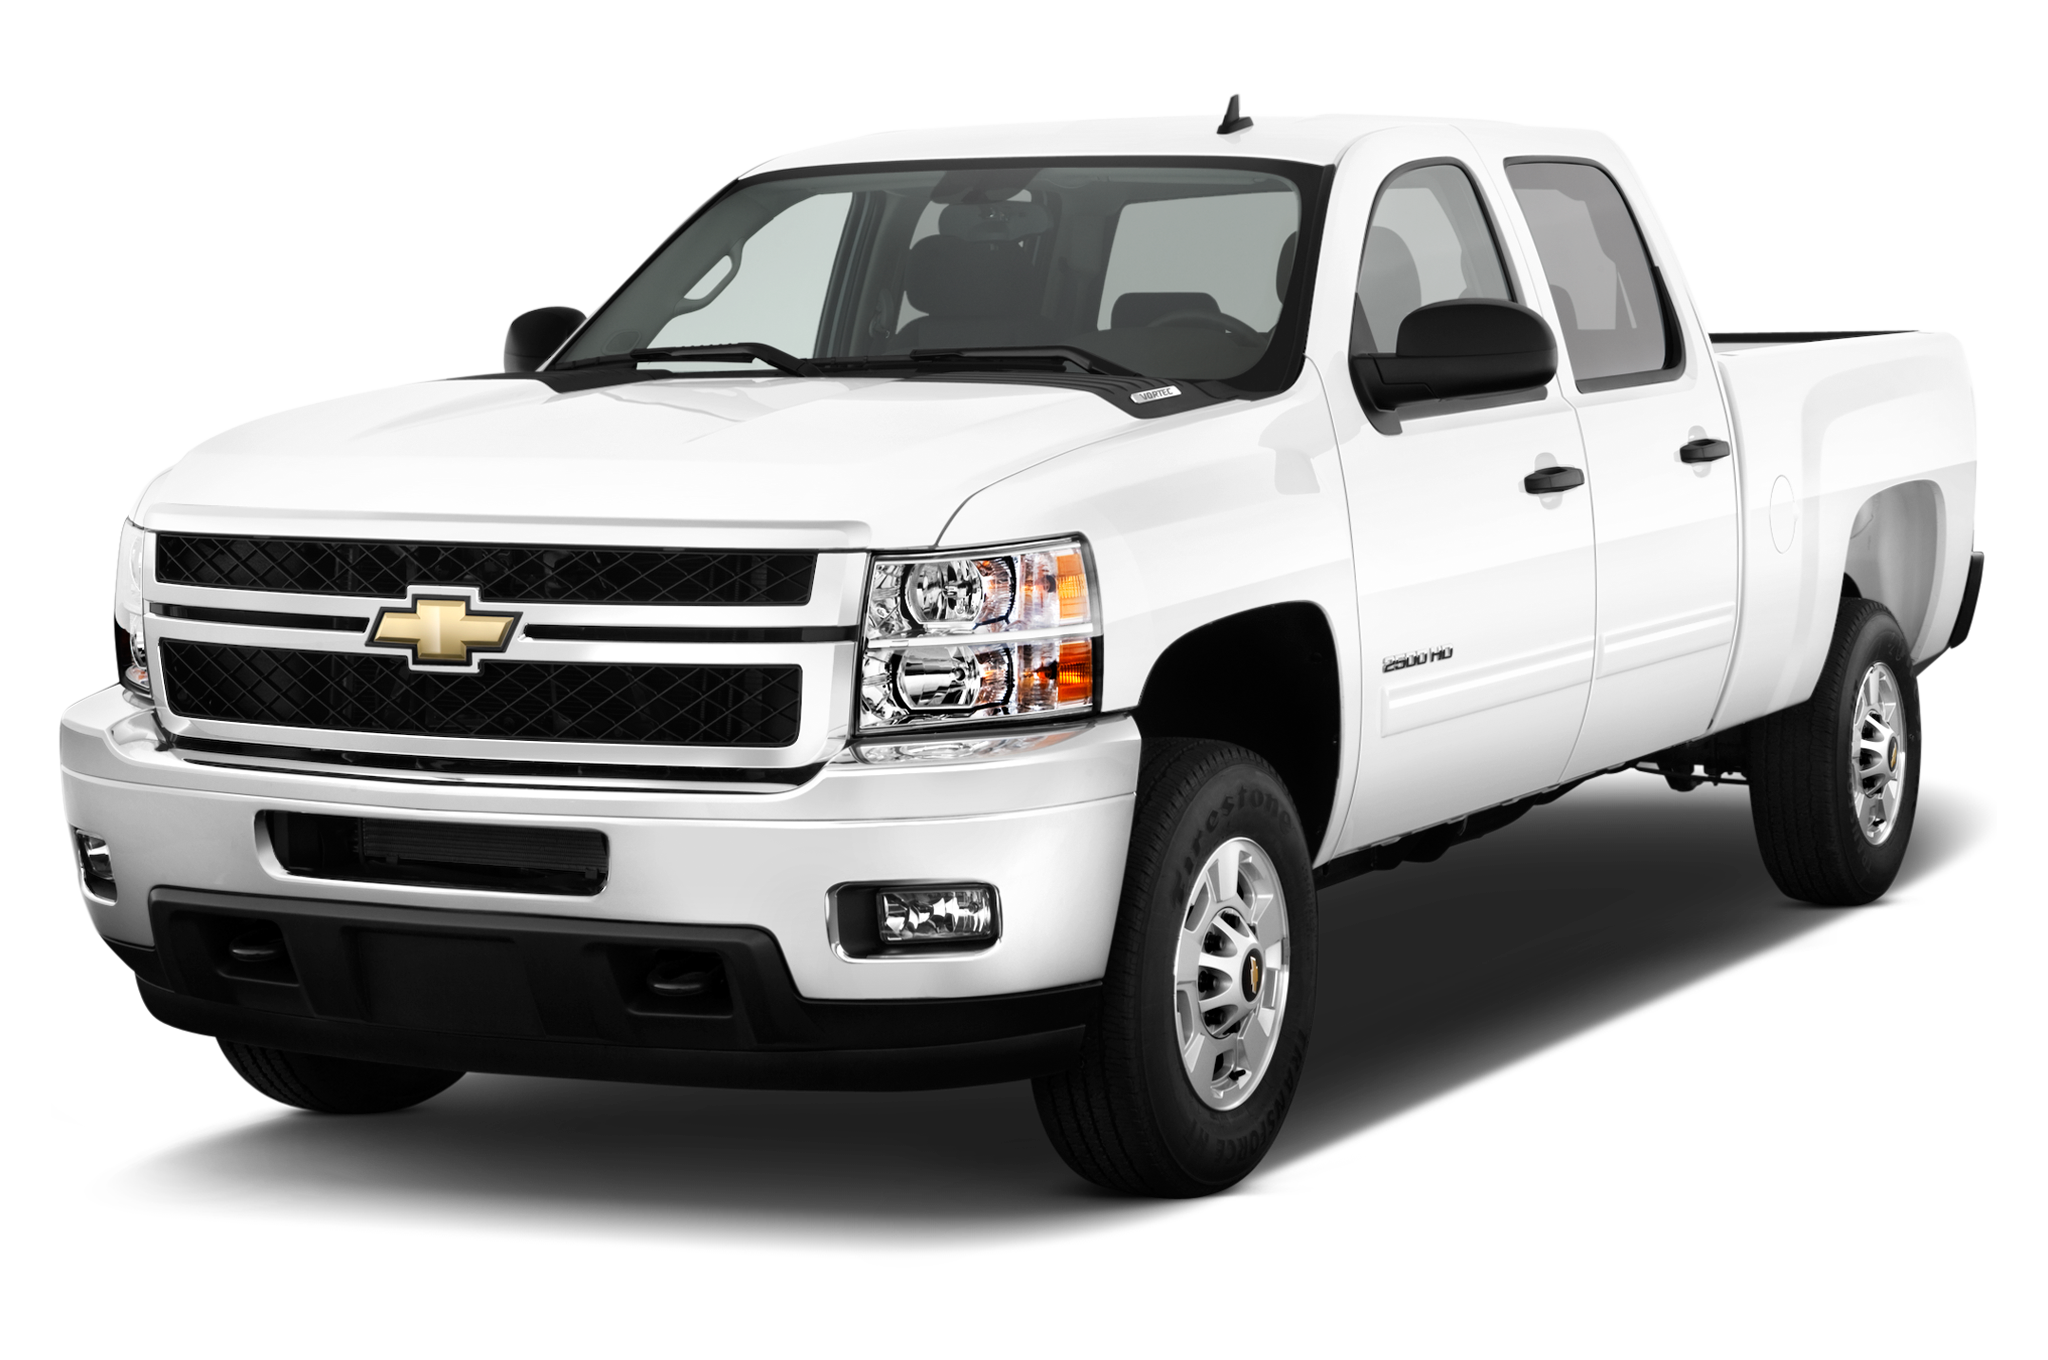 2012 Chevrolet Silverado Gets With New Appearance Packages